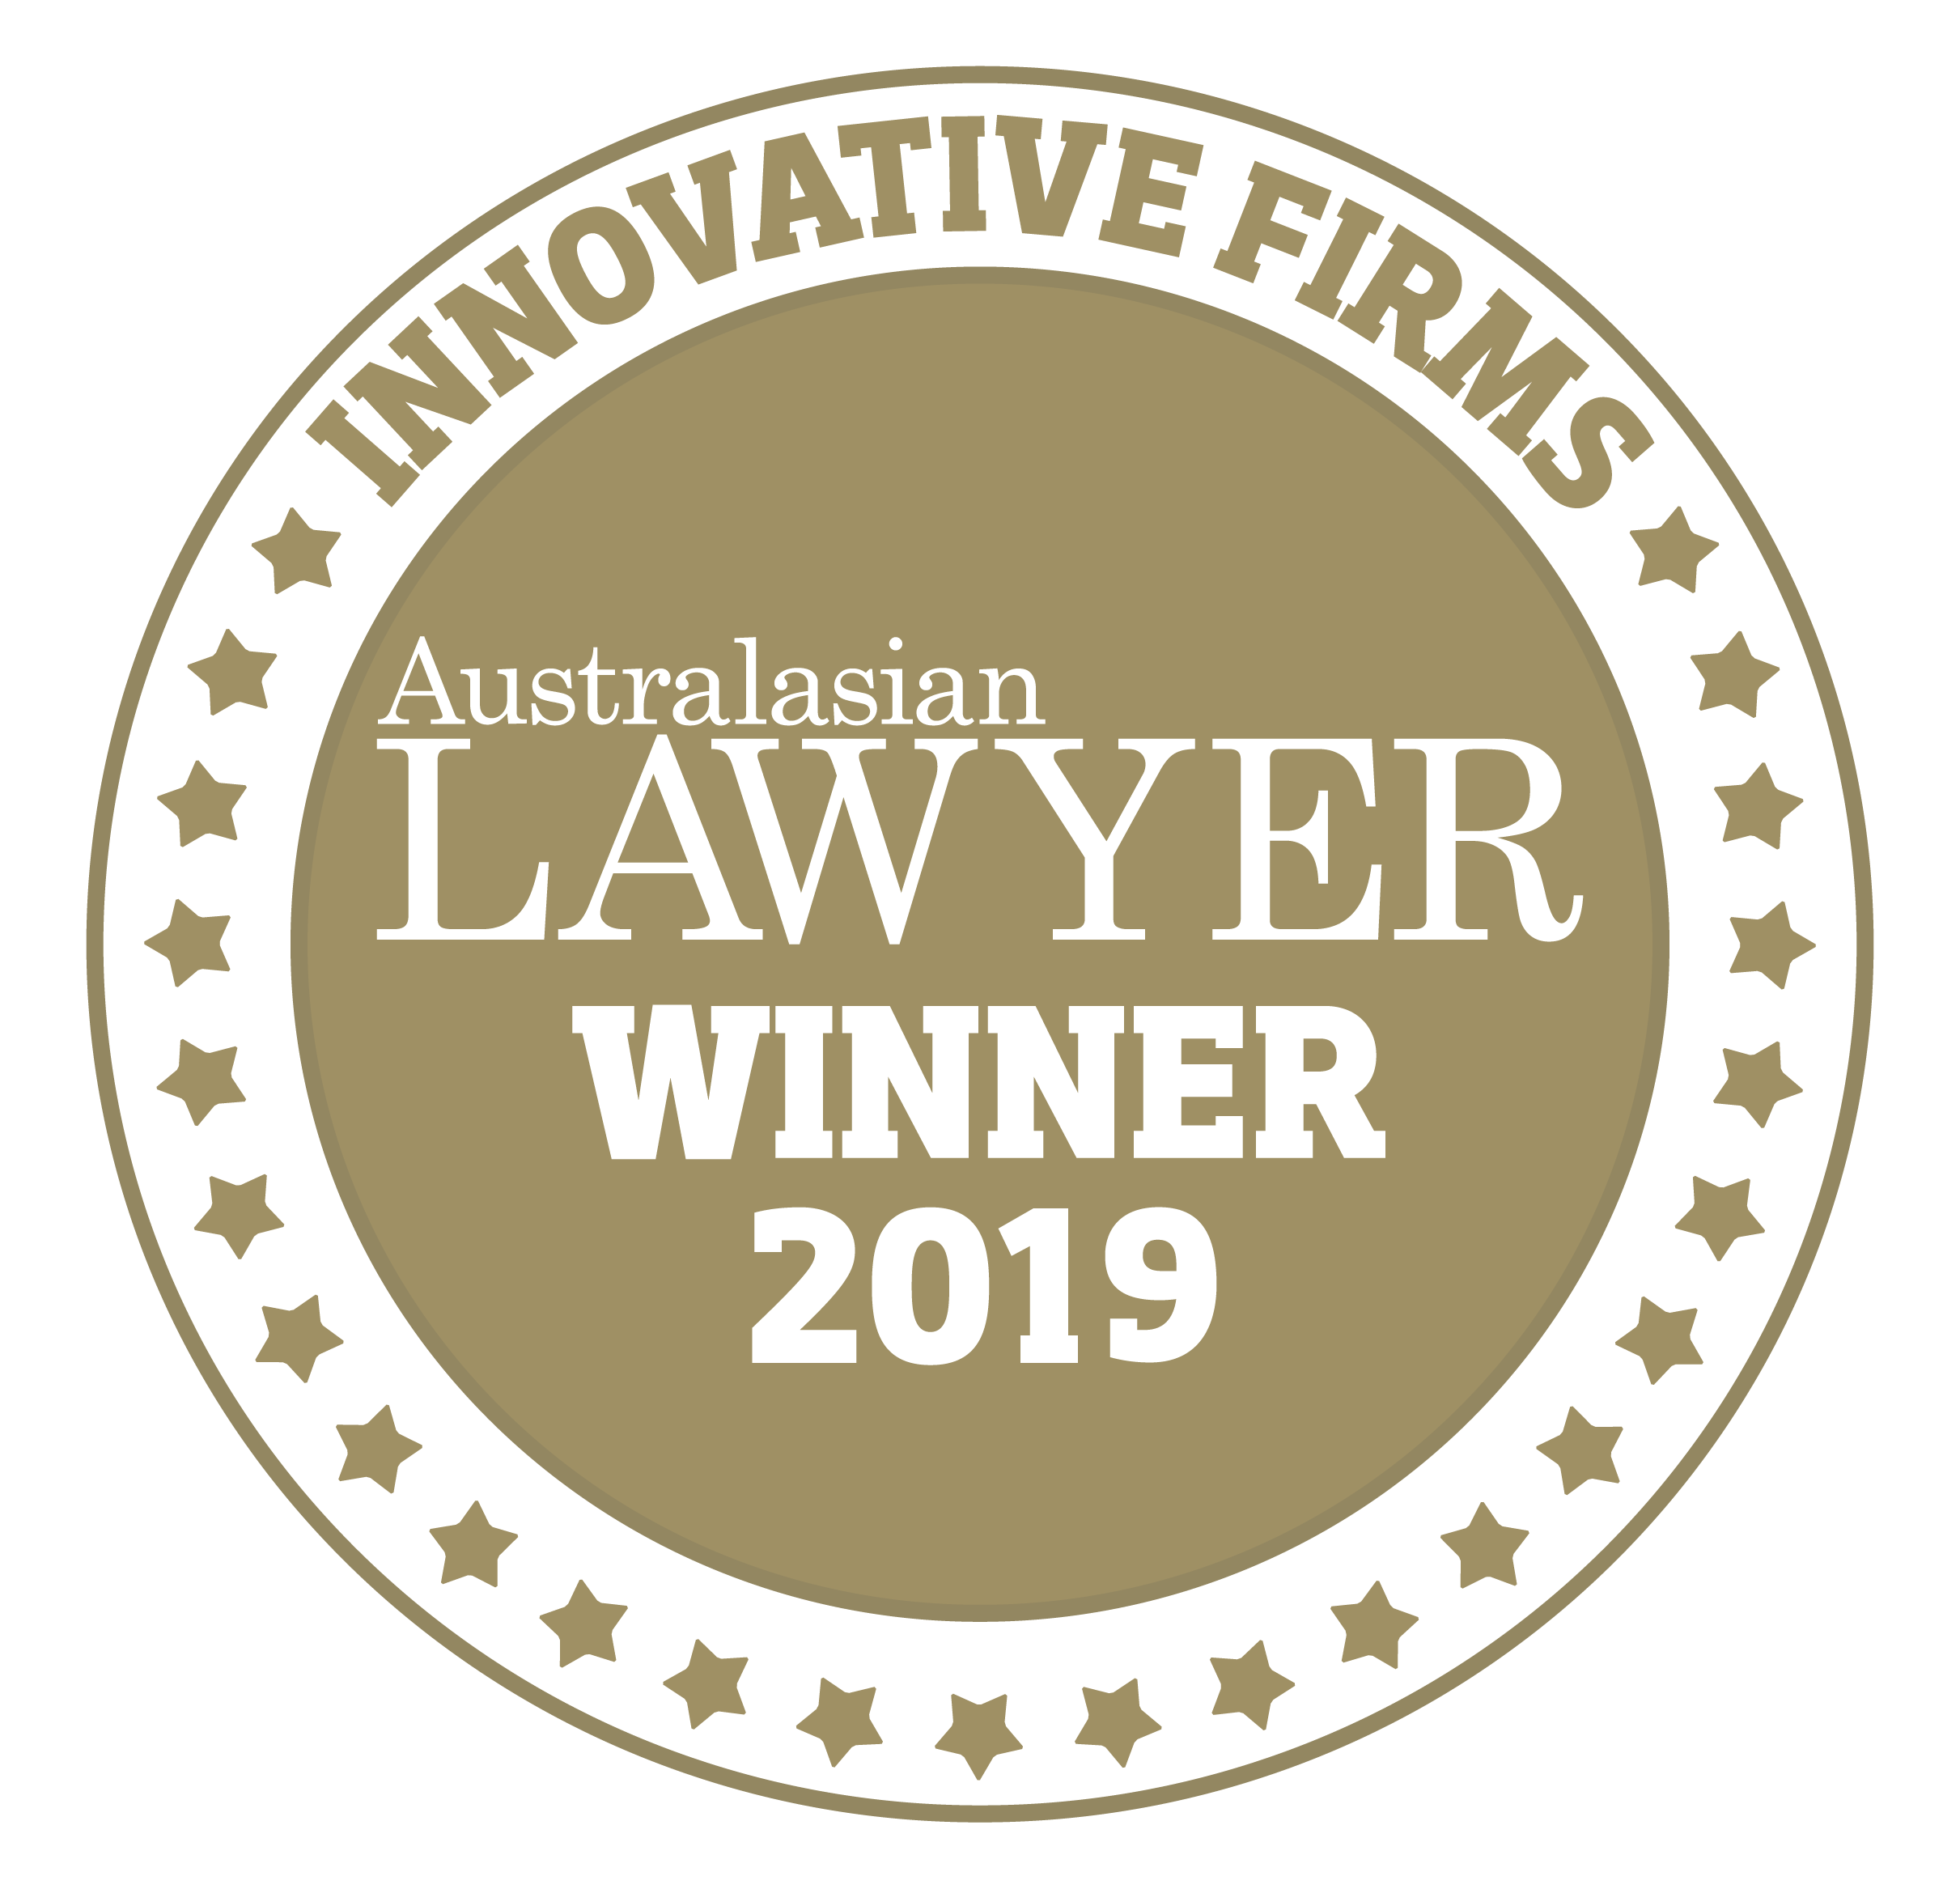 Australasian Lawyer Innovative Firms 2019.png